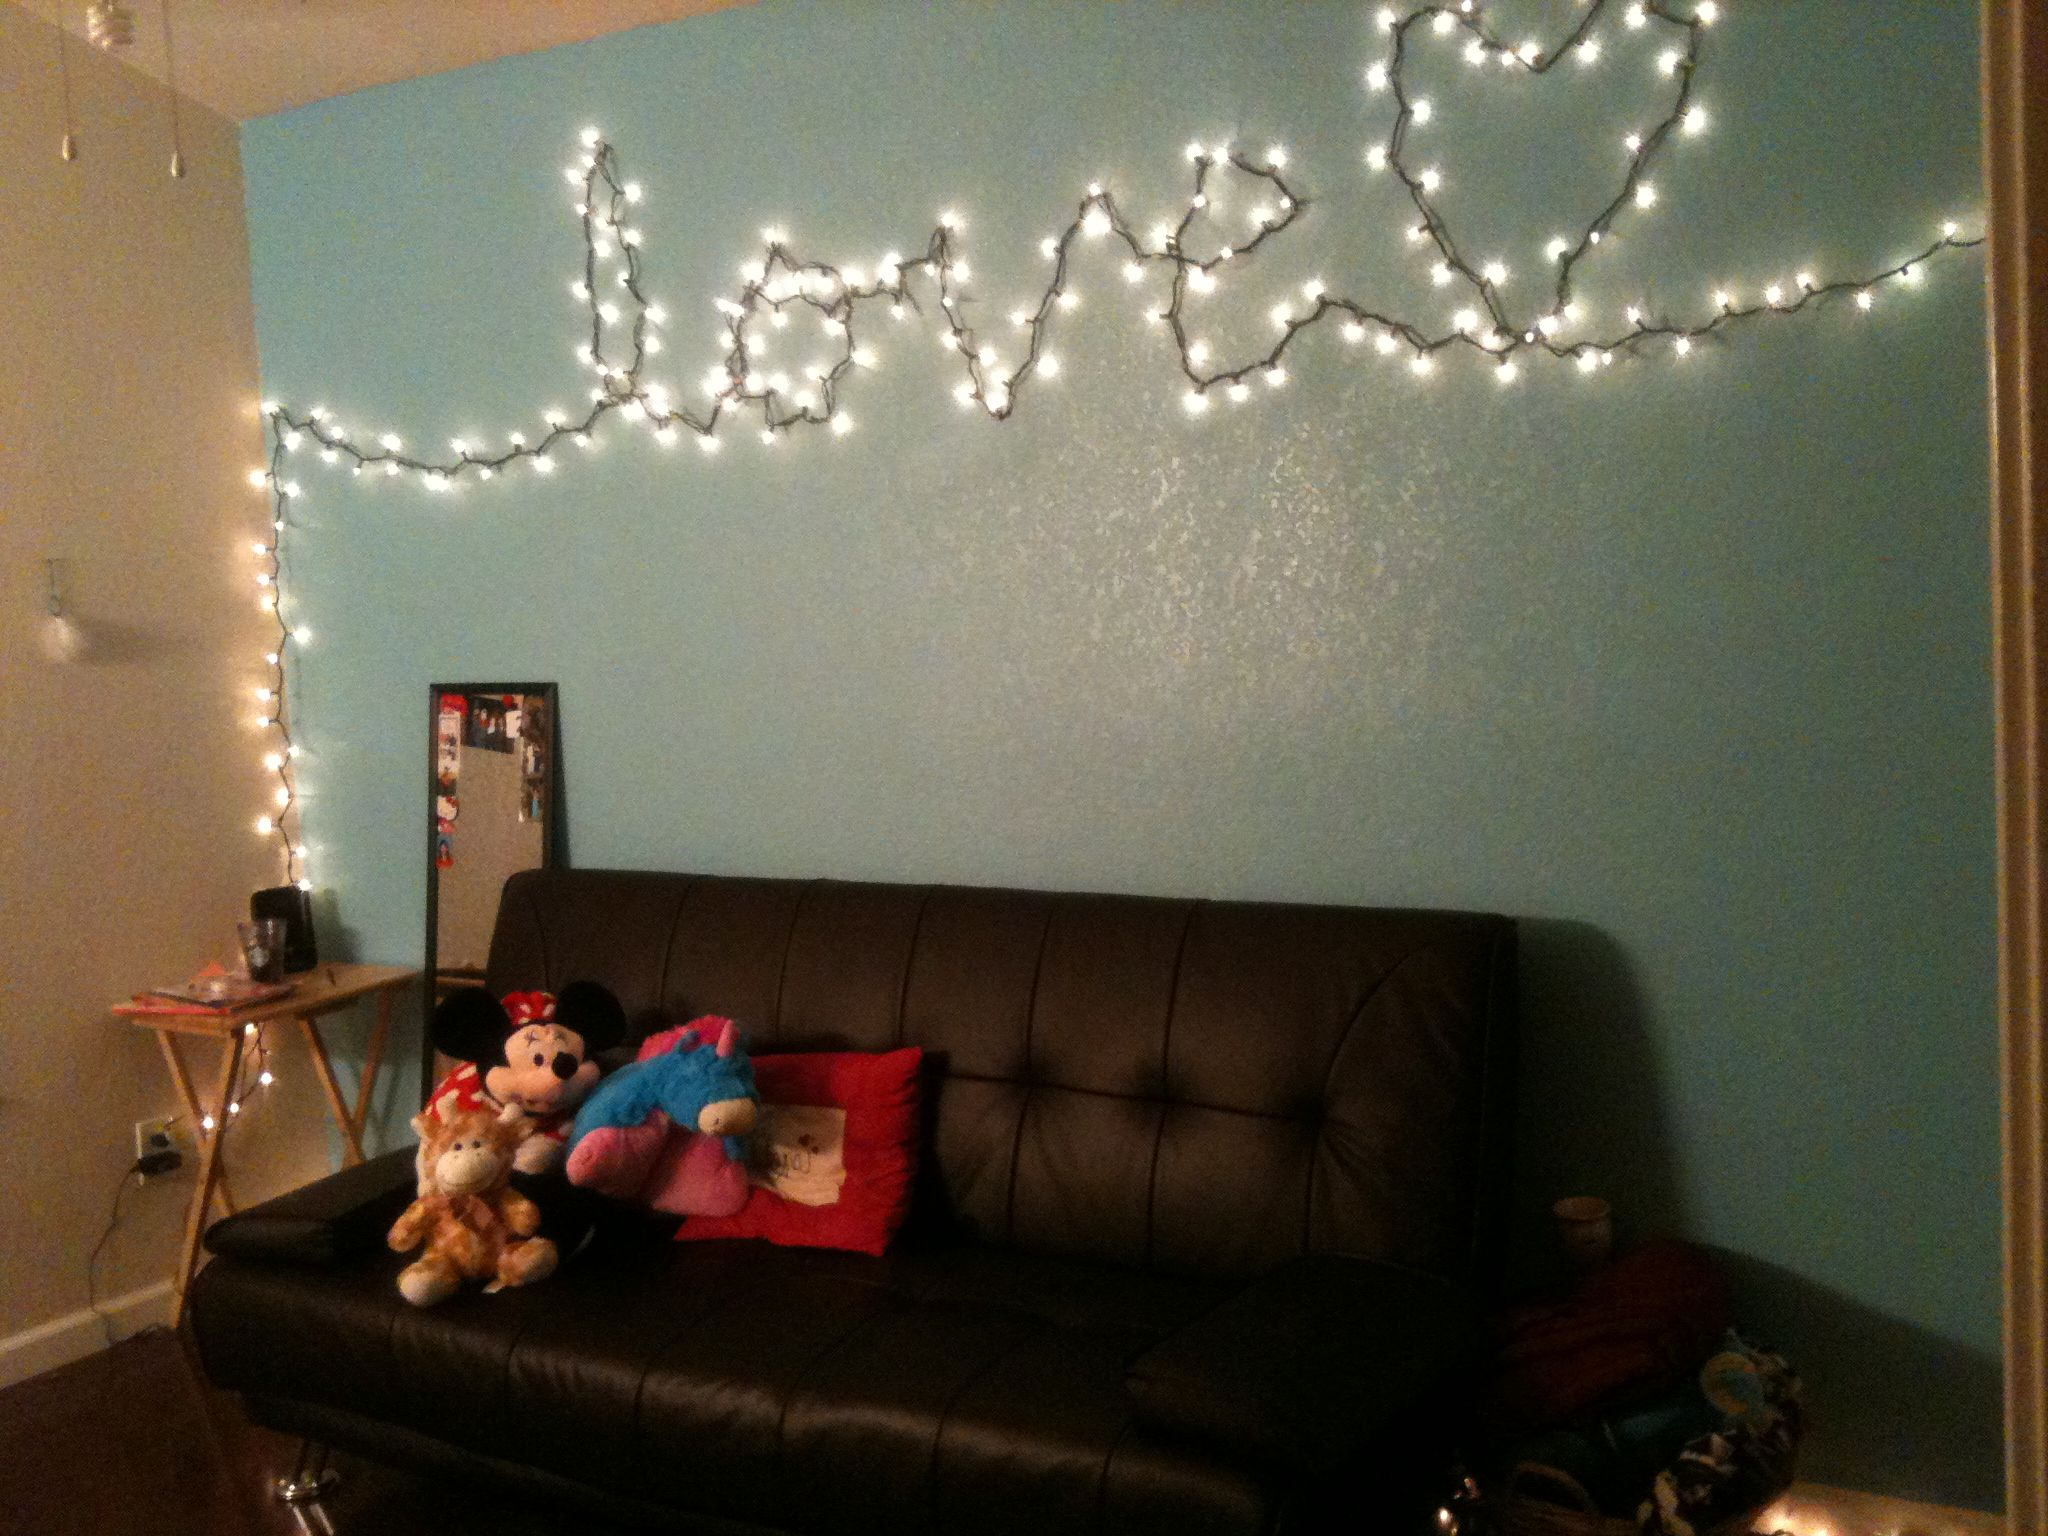 With Blanket Super Cute College Apartment D Pinterest Cork - Cute christmas lights for bedroom